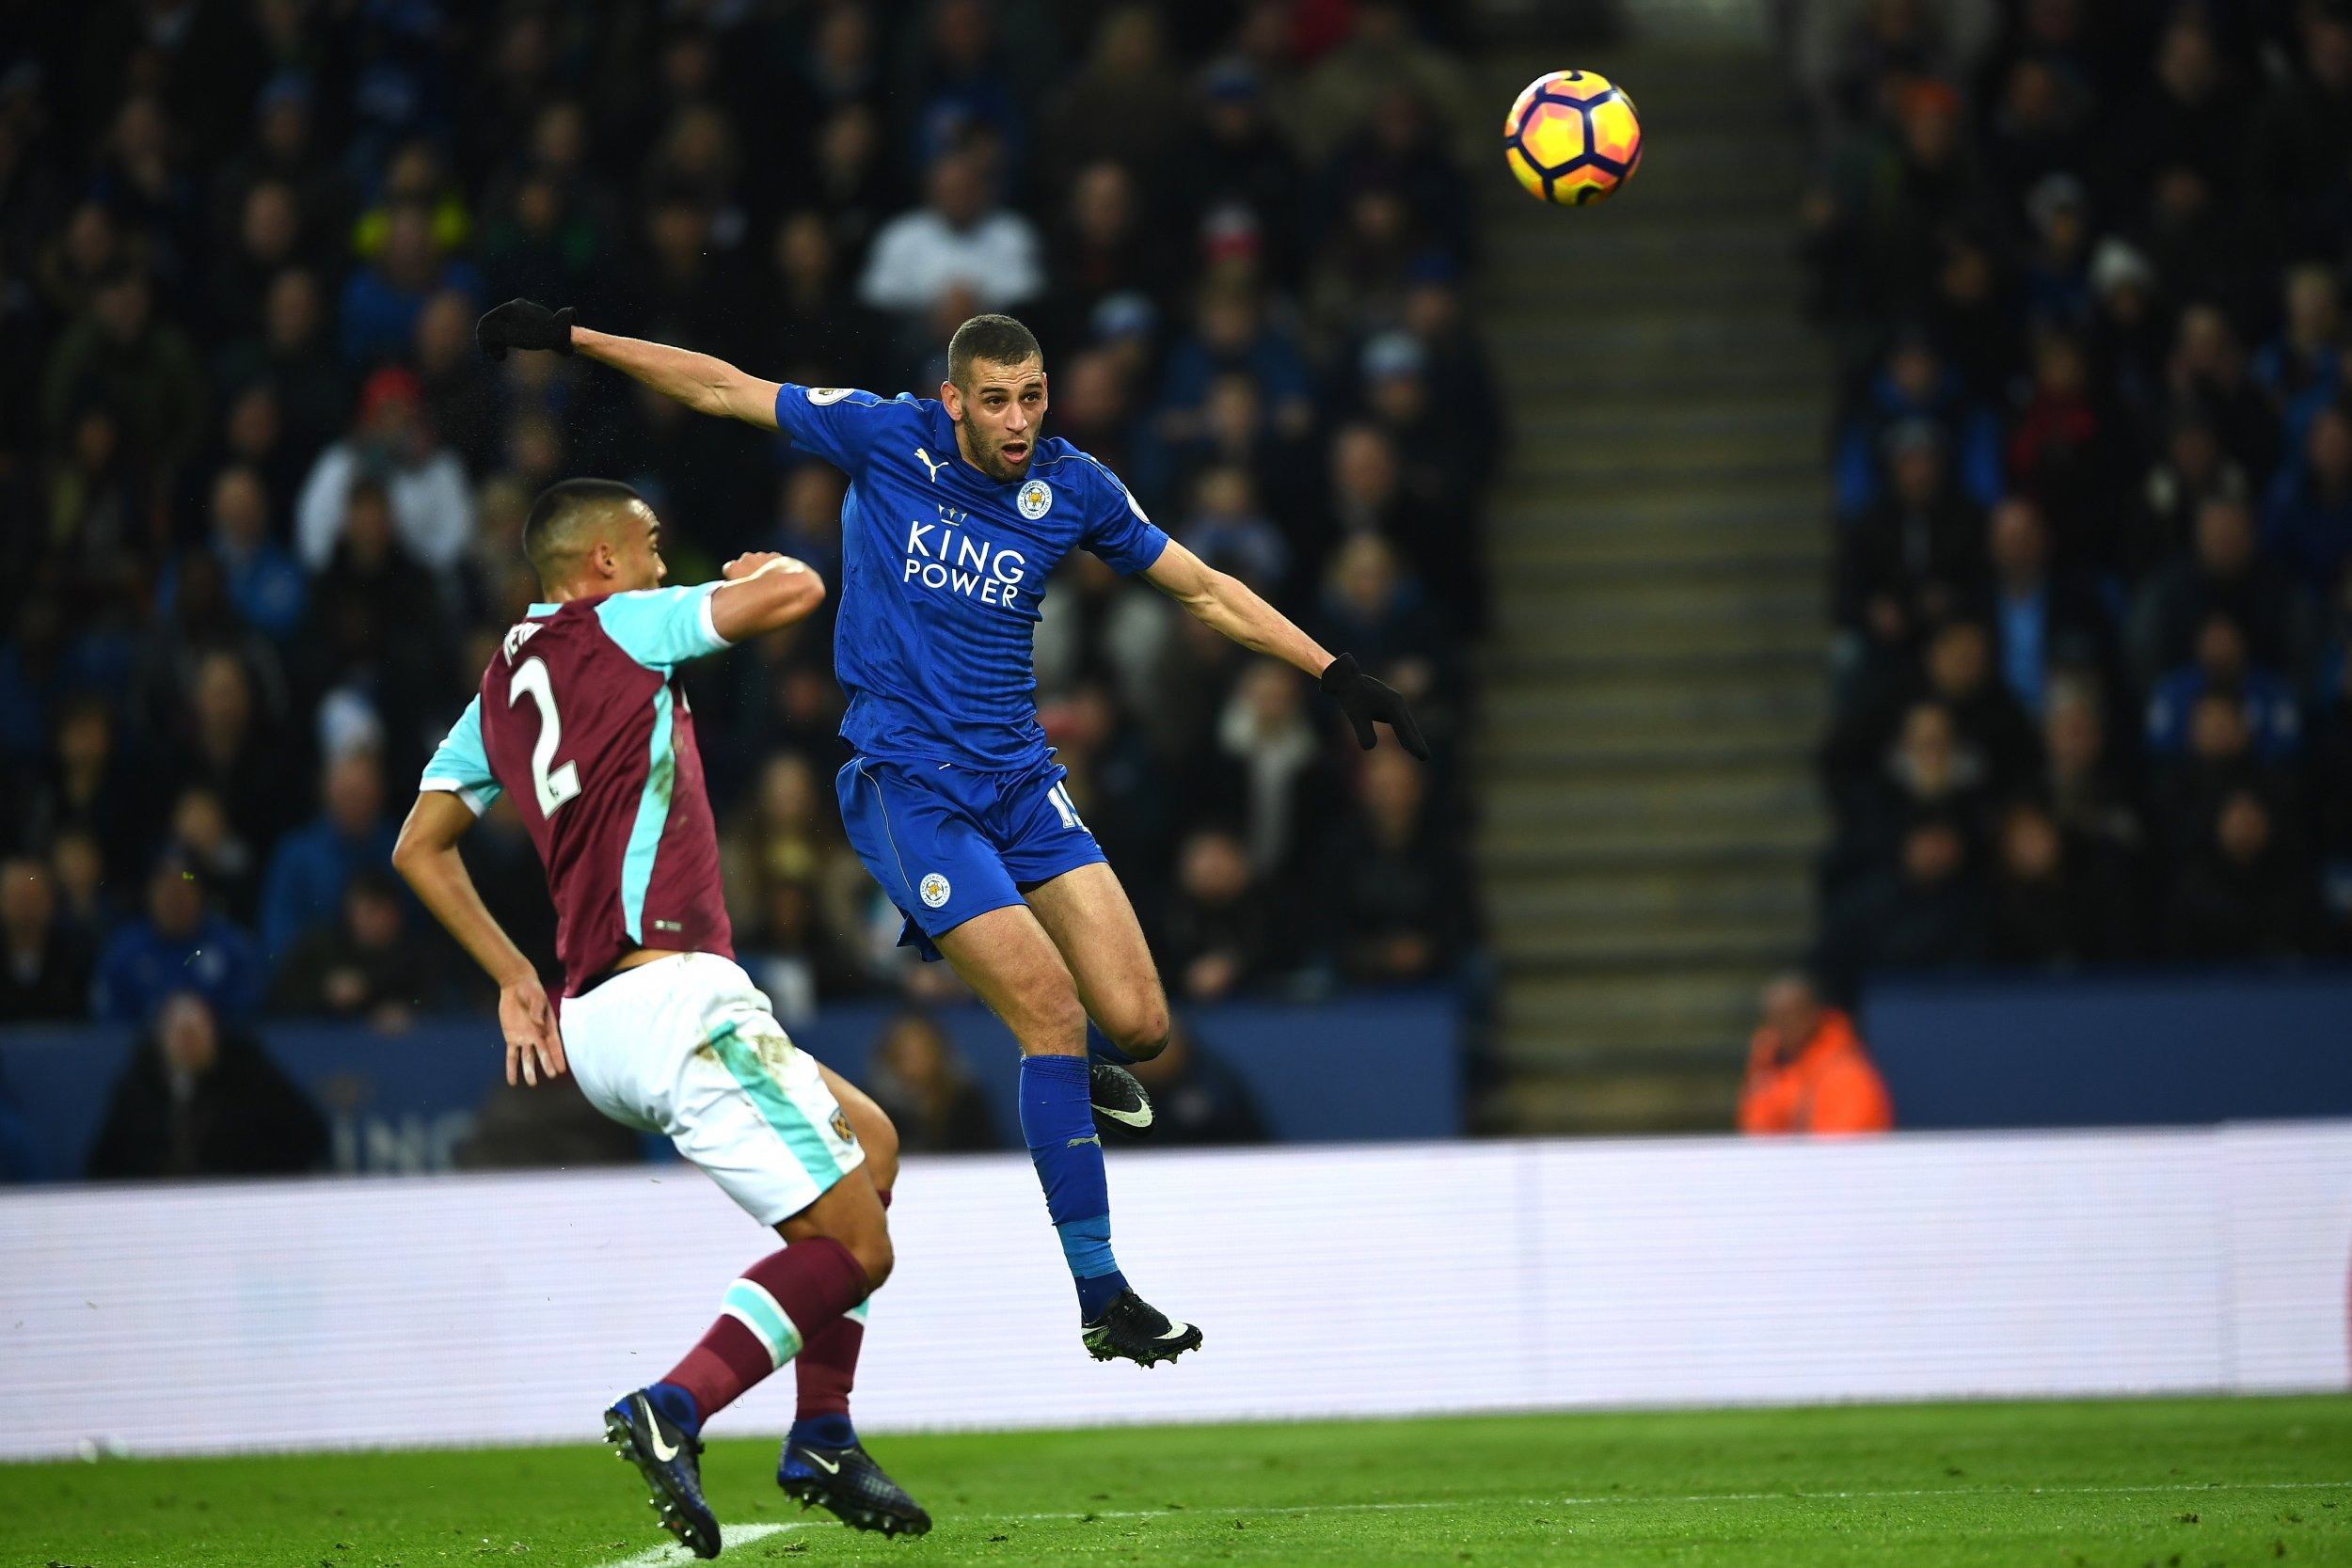 Leicester City striker Islam Slimani at the King Power Stadium, Leicester, England.